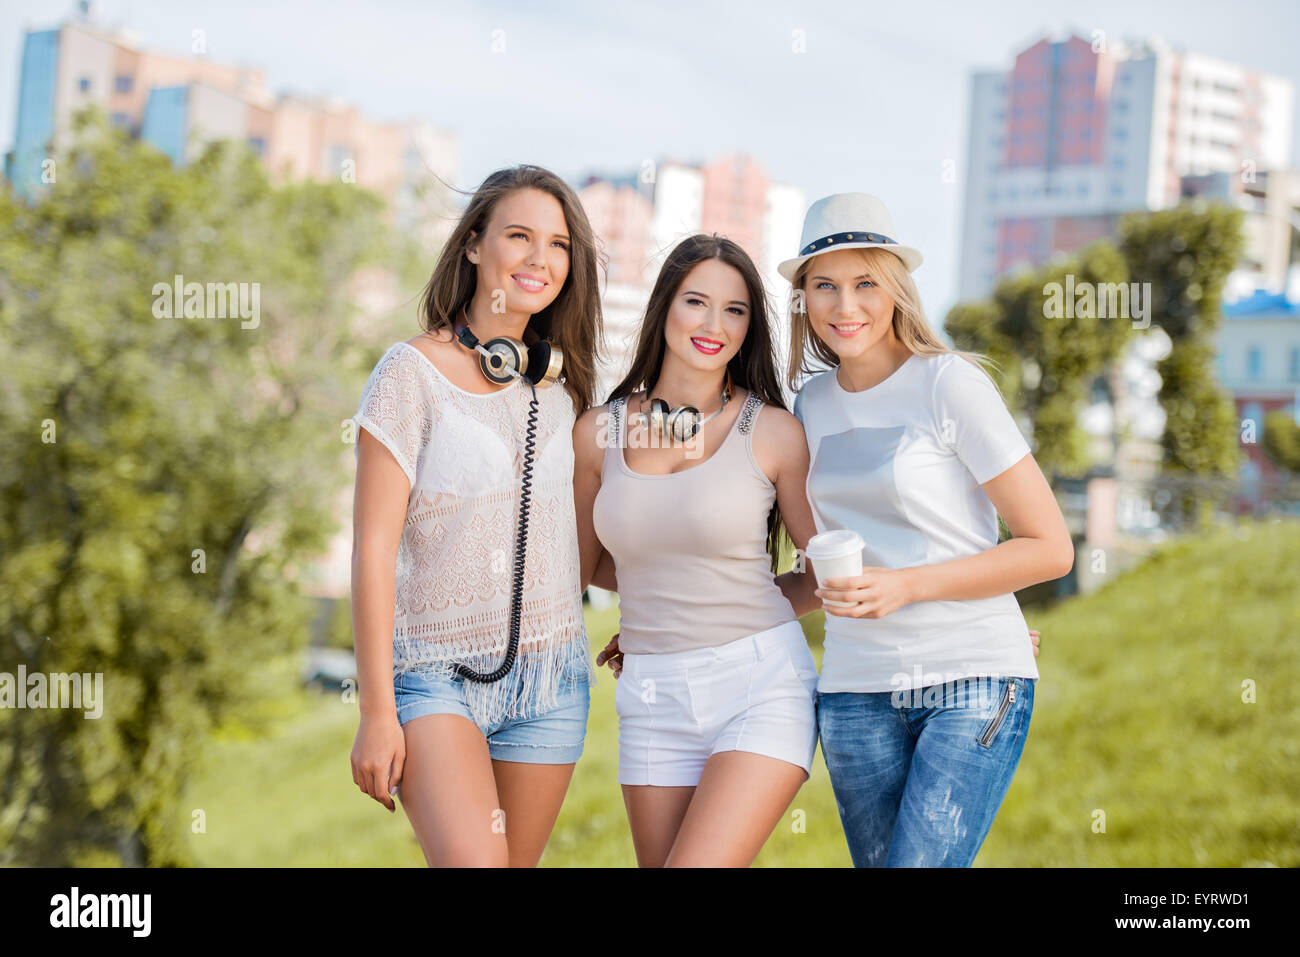 Three happy young women with vintage music headphones and a